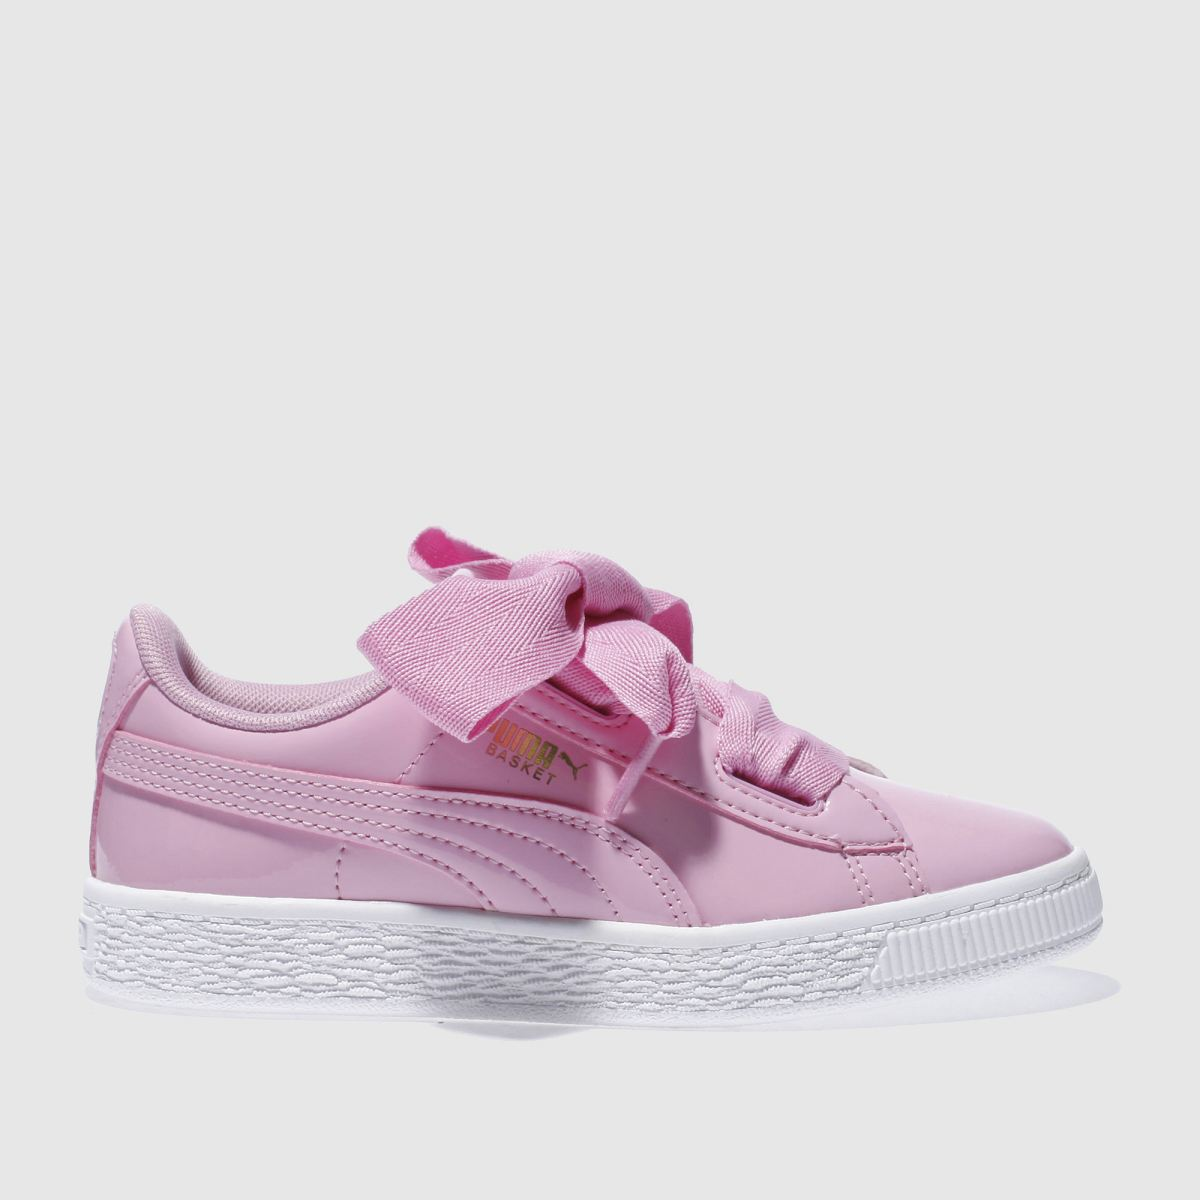 Puma Pink Basket Heart Patent Girls Junior Junior